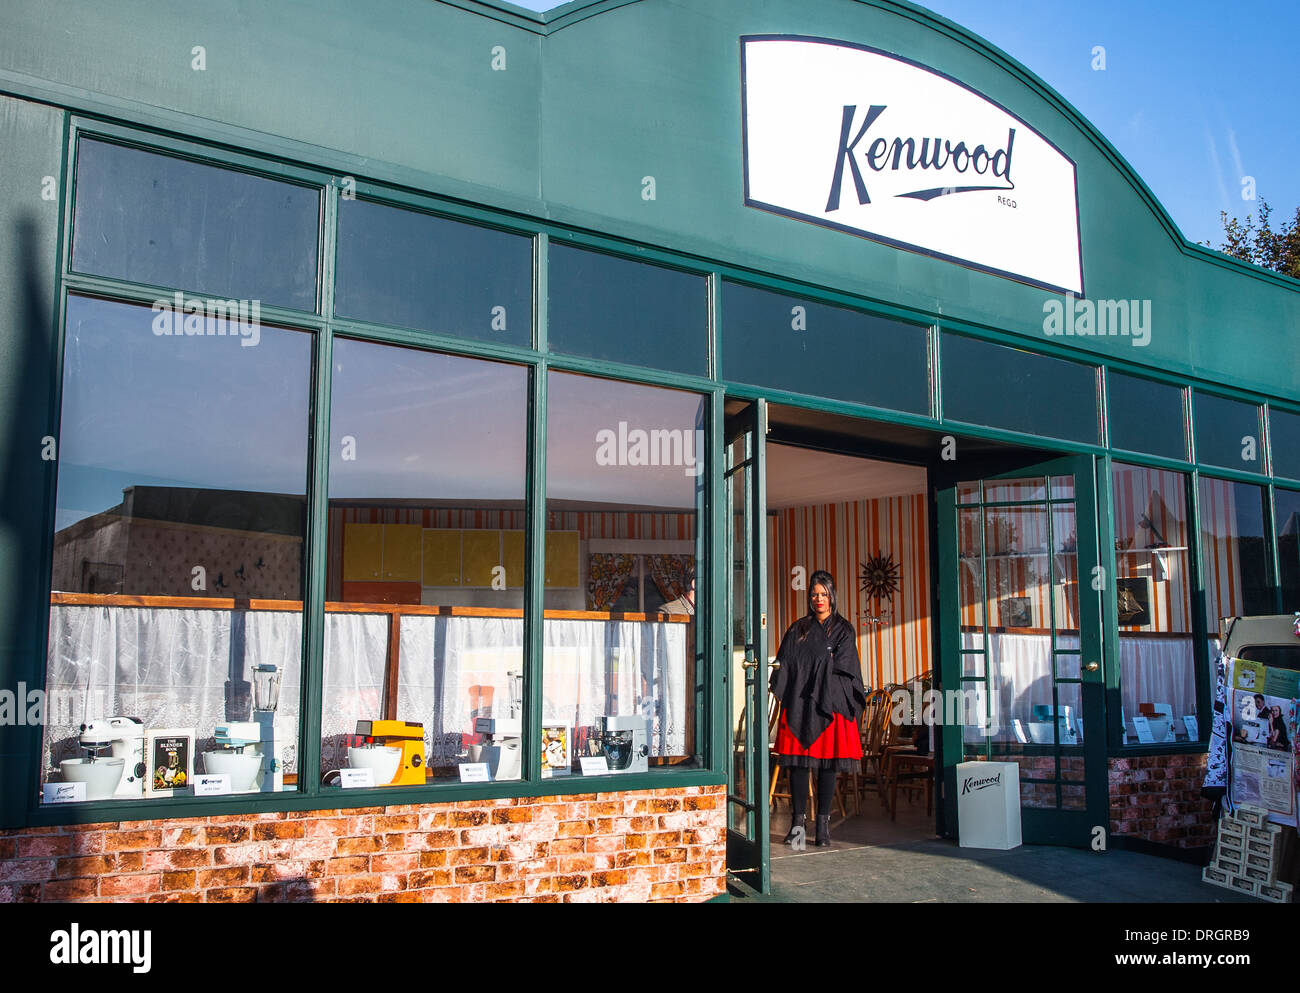 Woman standing in doorway of a Kenwood food mixer shop at the Goodwood Revival 2013, West Sussex, UK - Stock Image